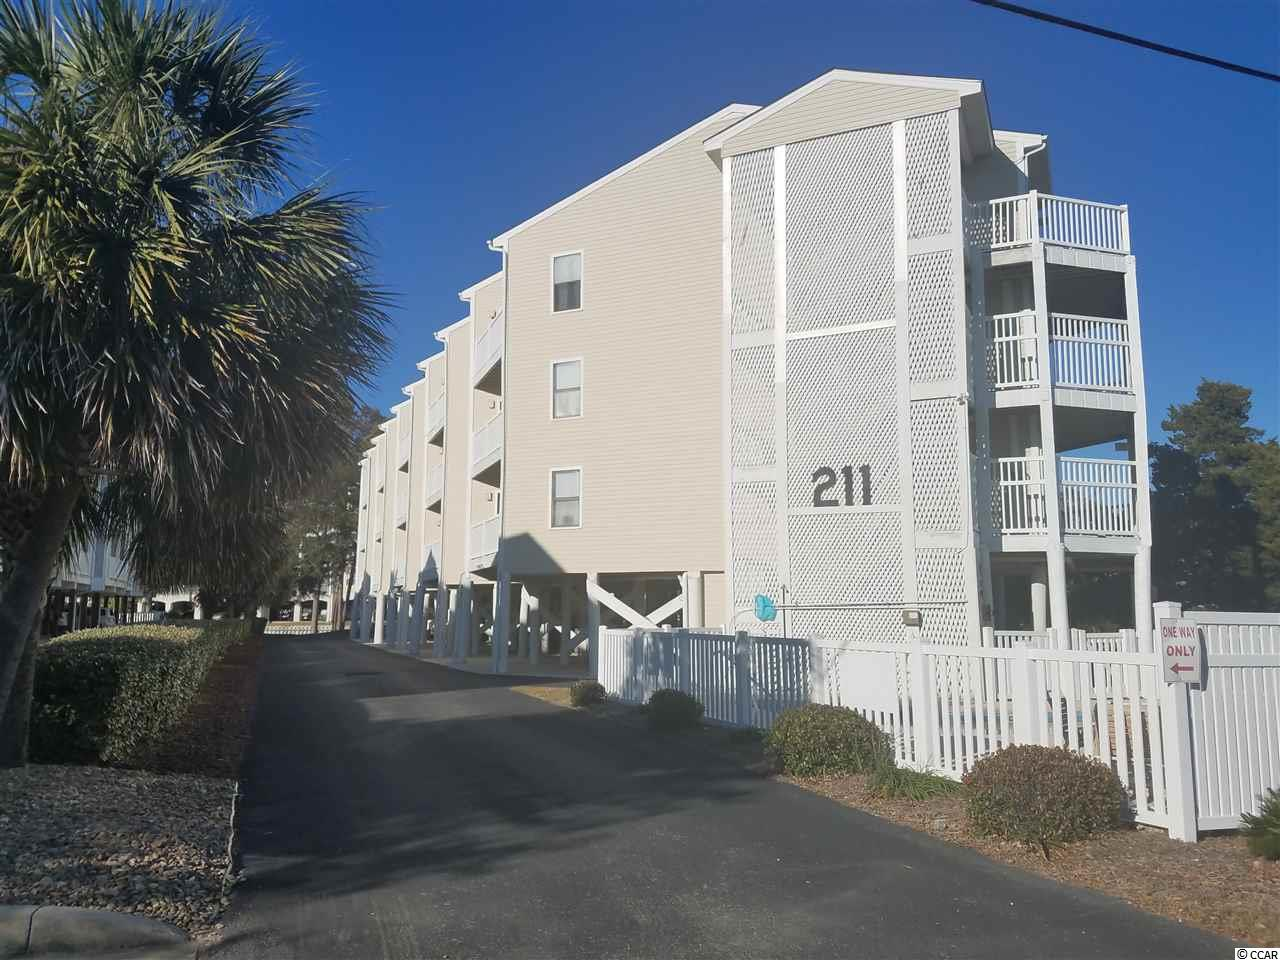 Here is a great opportunity to own a property just 2 blocks from all that Main Street, North Myrtle Beach has to offer. SOS will never be the same when you can have it all right at your fingertips. Also a short 1 block to the beach. This unit has never been on the rental program but could generate some good income. The condition of this unit is unprecedented.